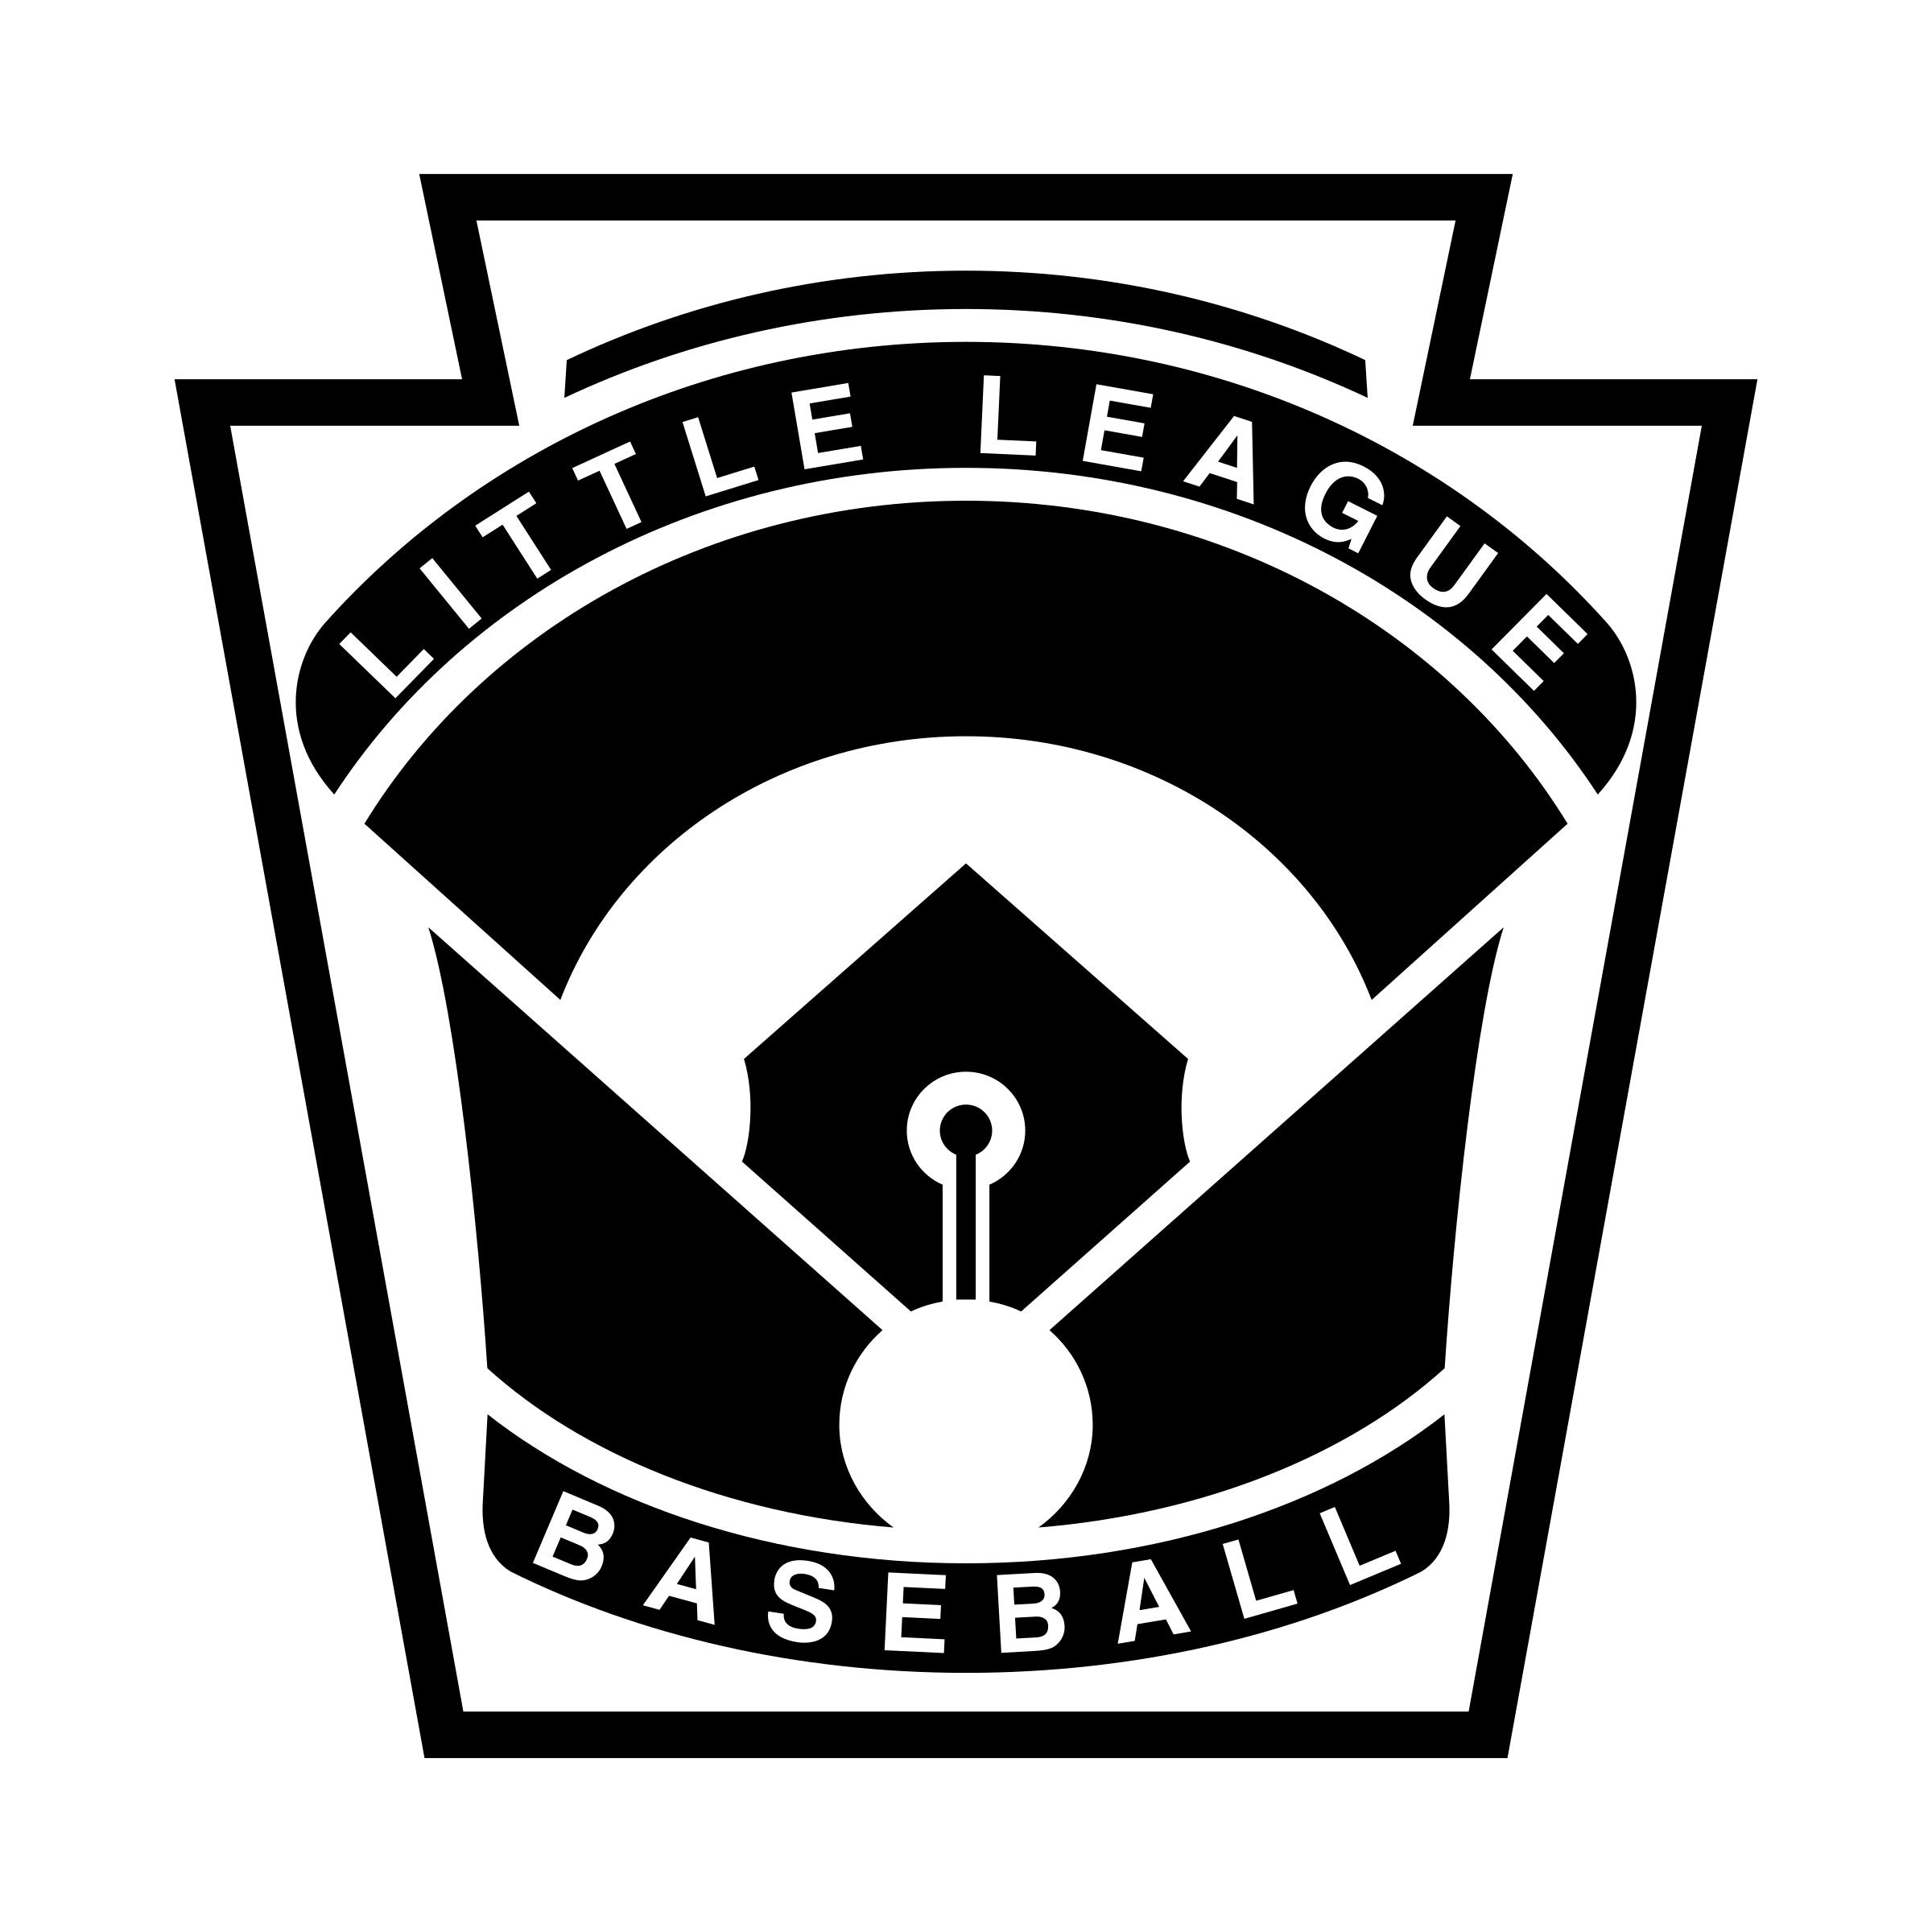 image transparent download Vector emblem baseball. Little league logo png